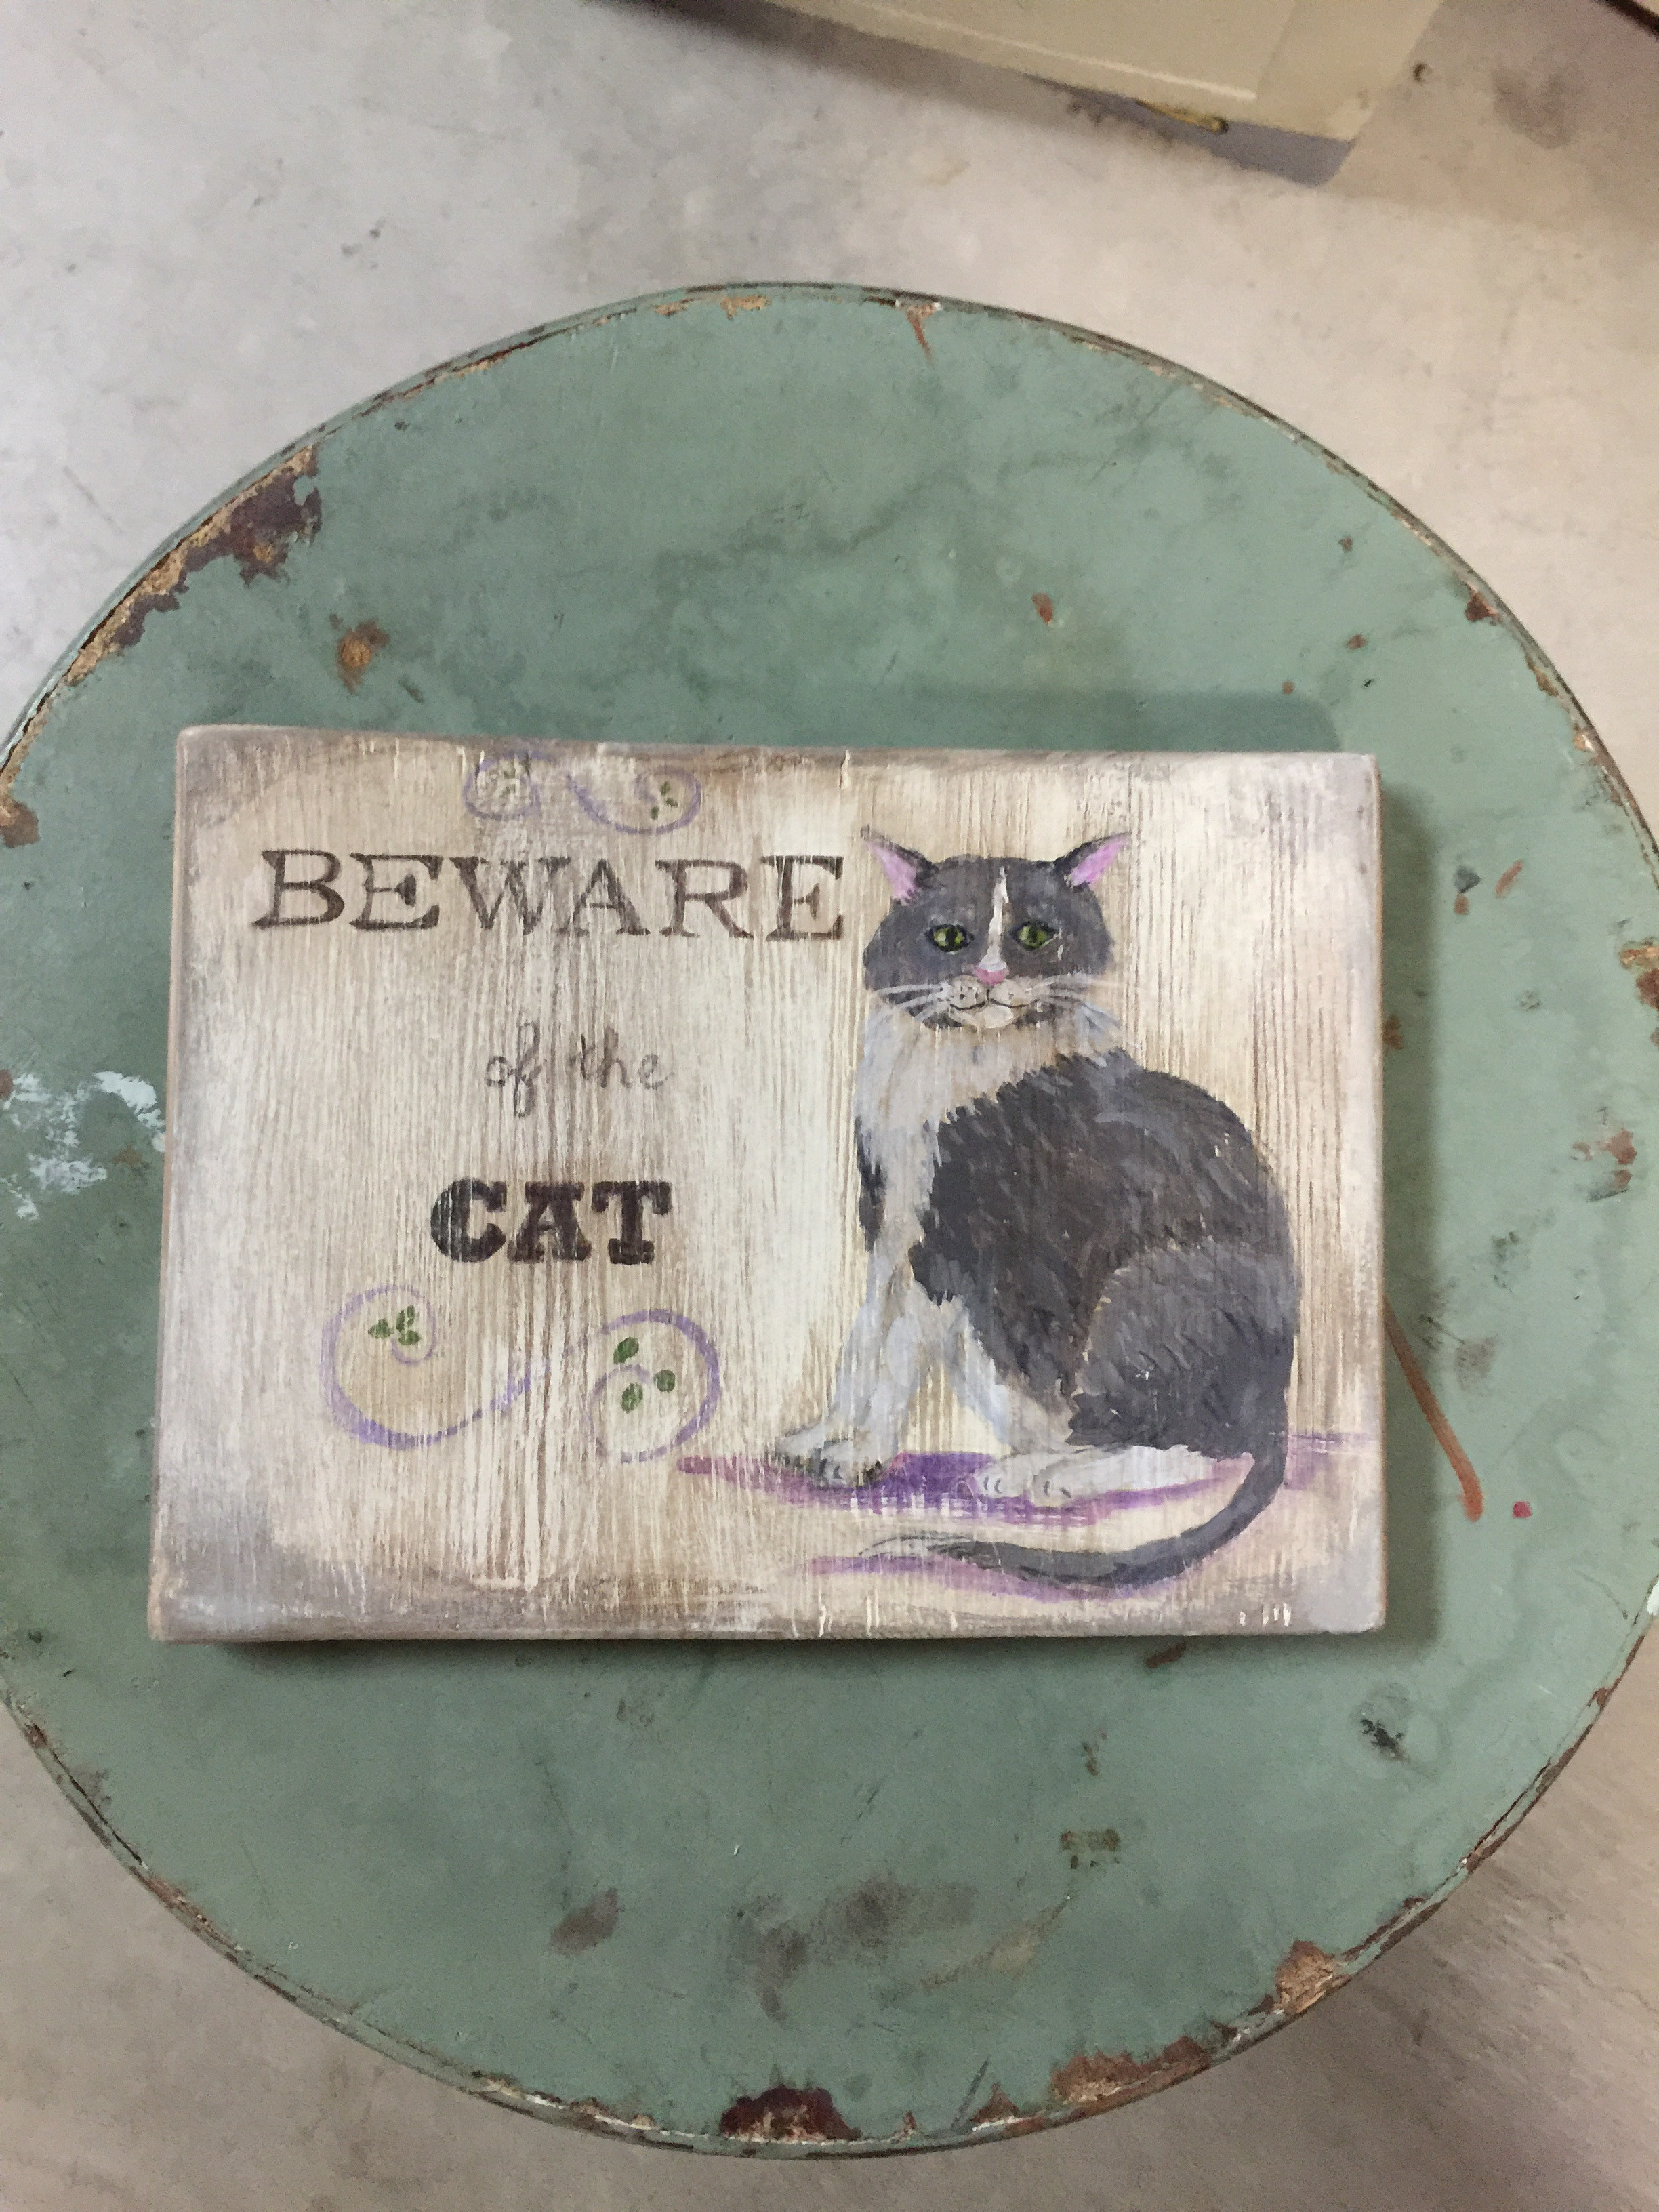 Hand painted cat beware sign on fence wood.